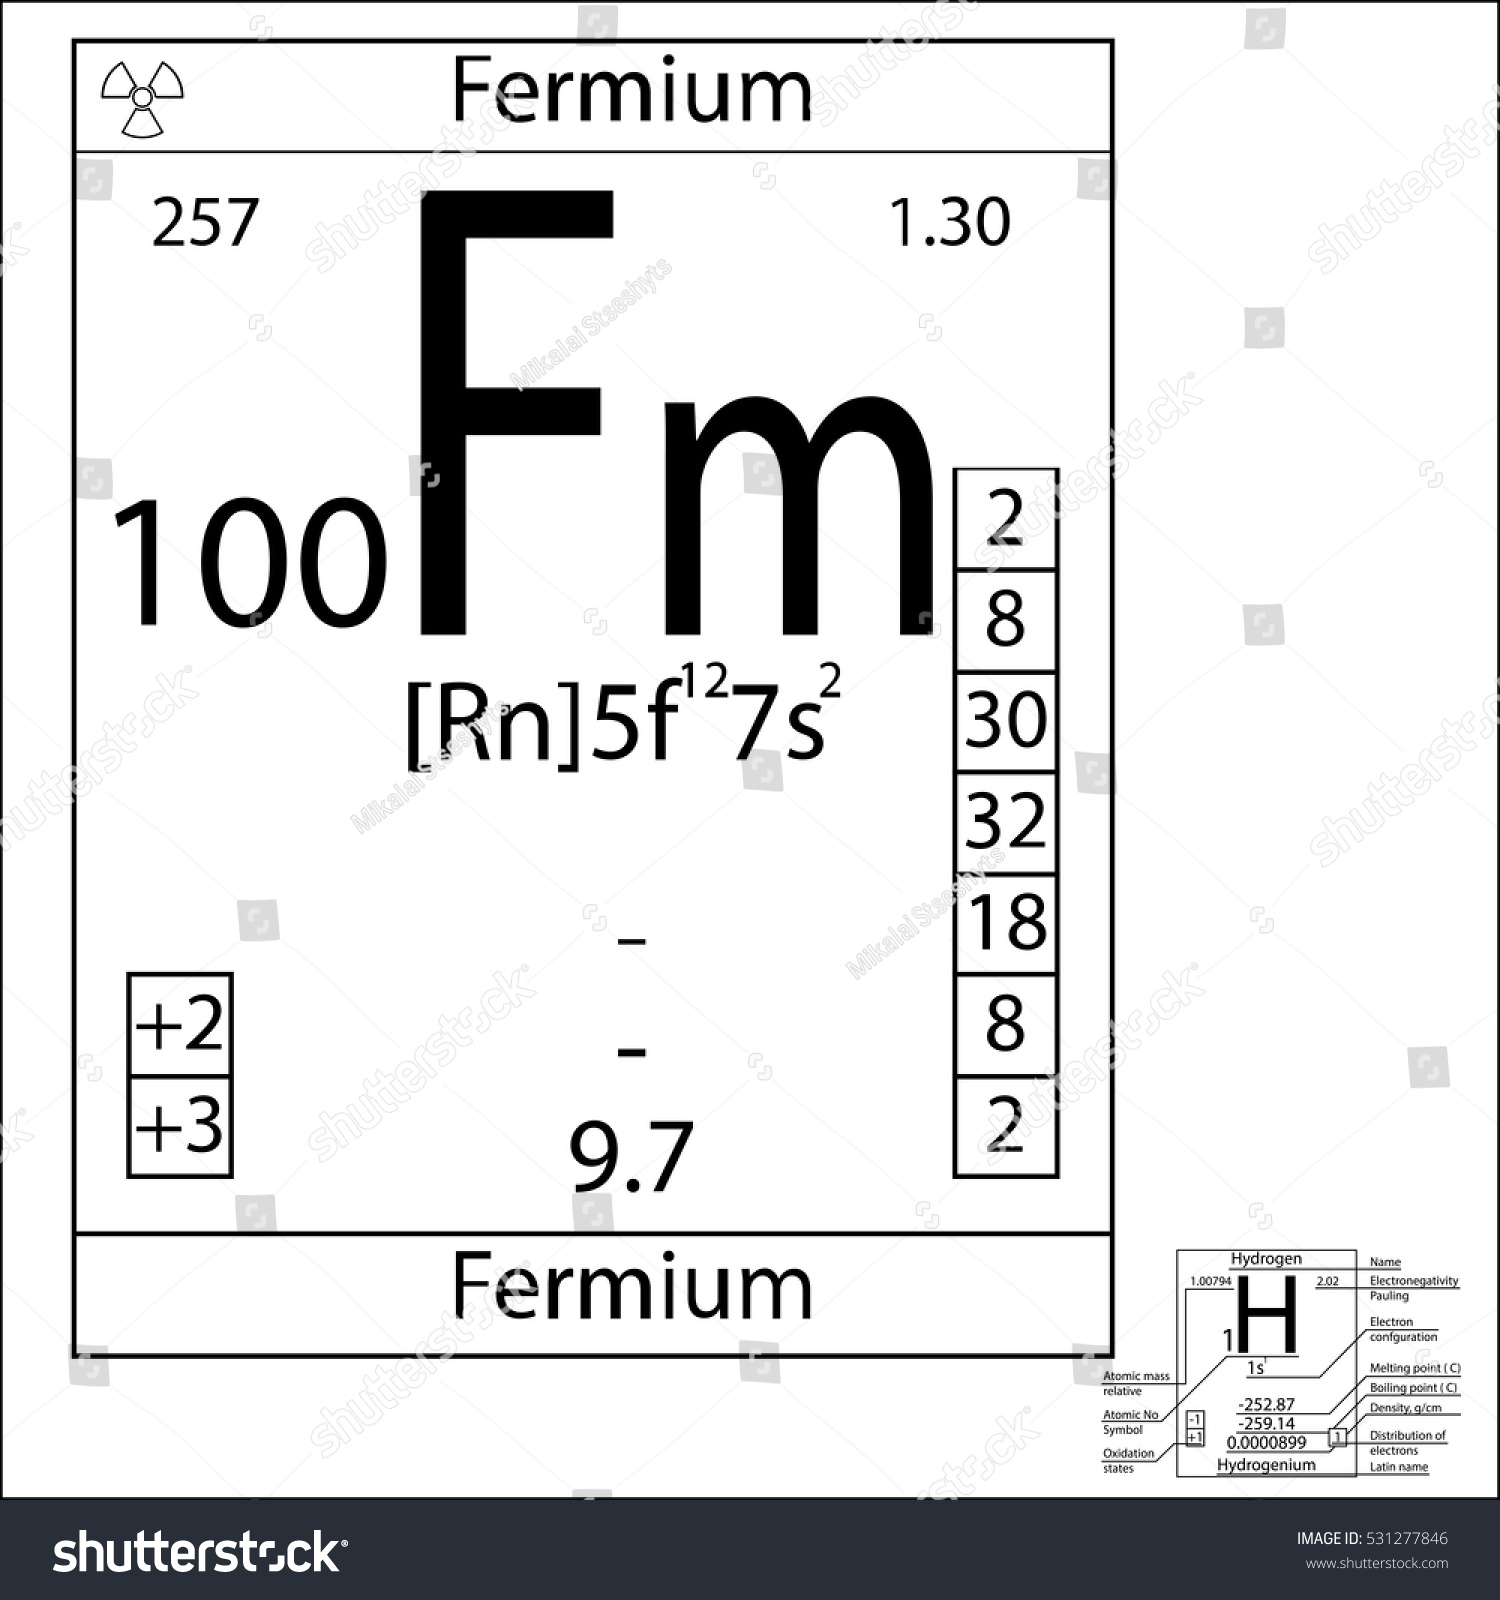 Thulium periodic table choice image periodic table images periodic table element fermium basic properties stock vector the periodic table element fermium with the basic gamestrikefo Choice Image